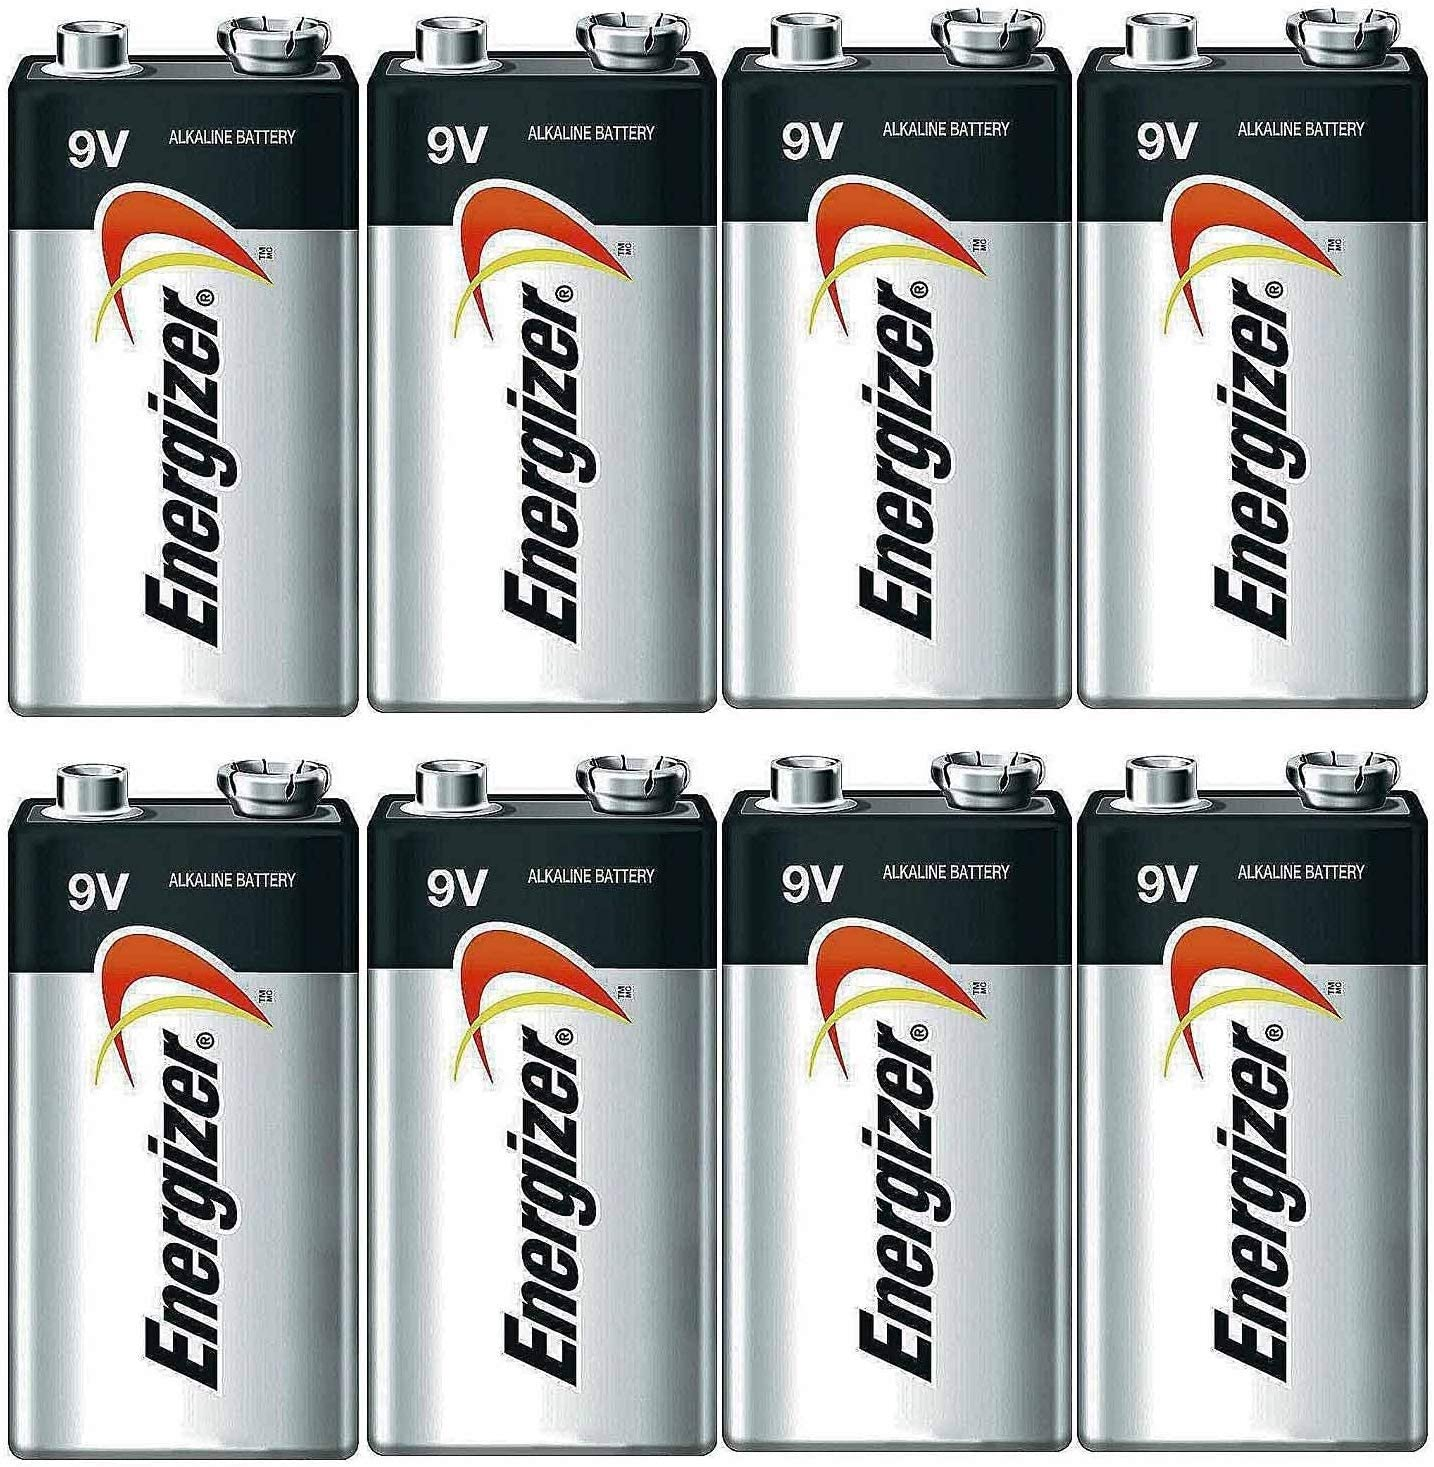 Energizer E522 Max 9V Alkaline battery - 8 Count: Health & Personal Care